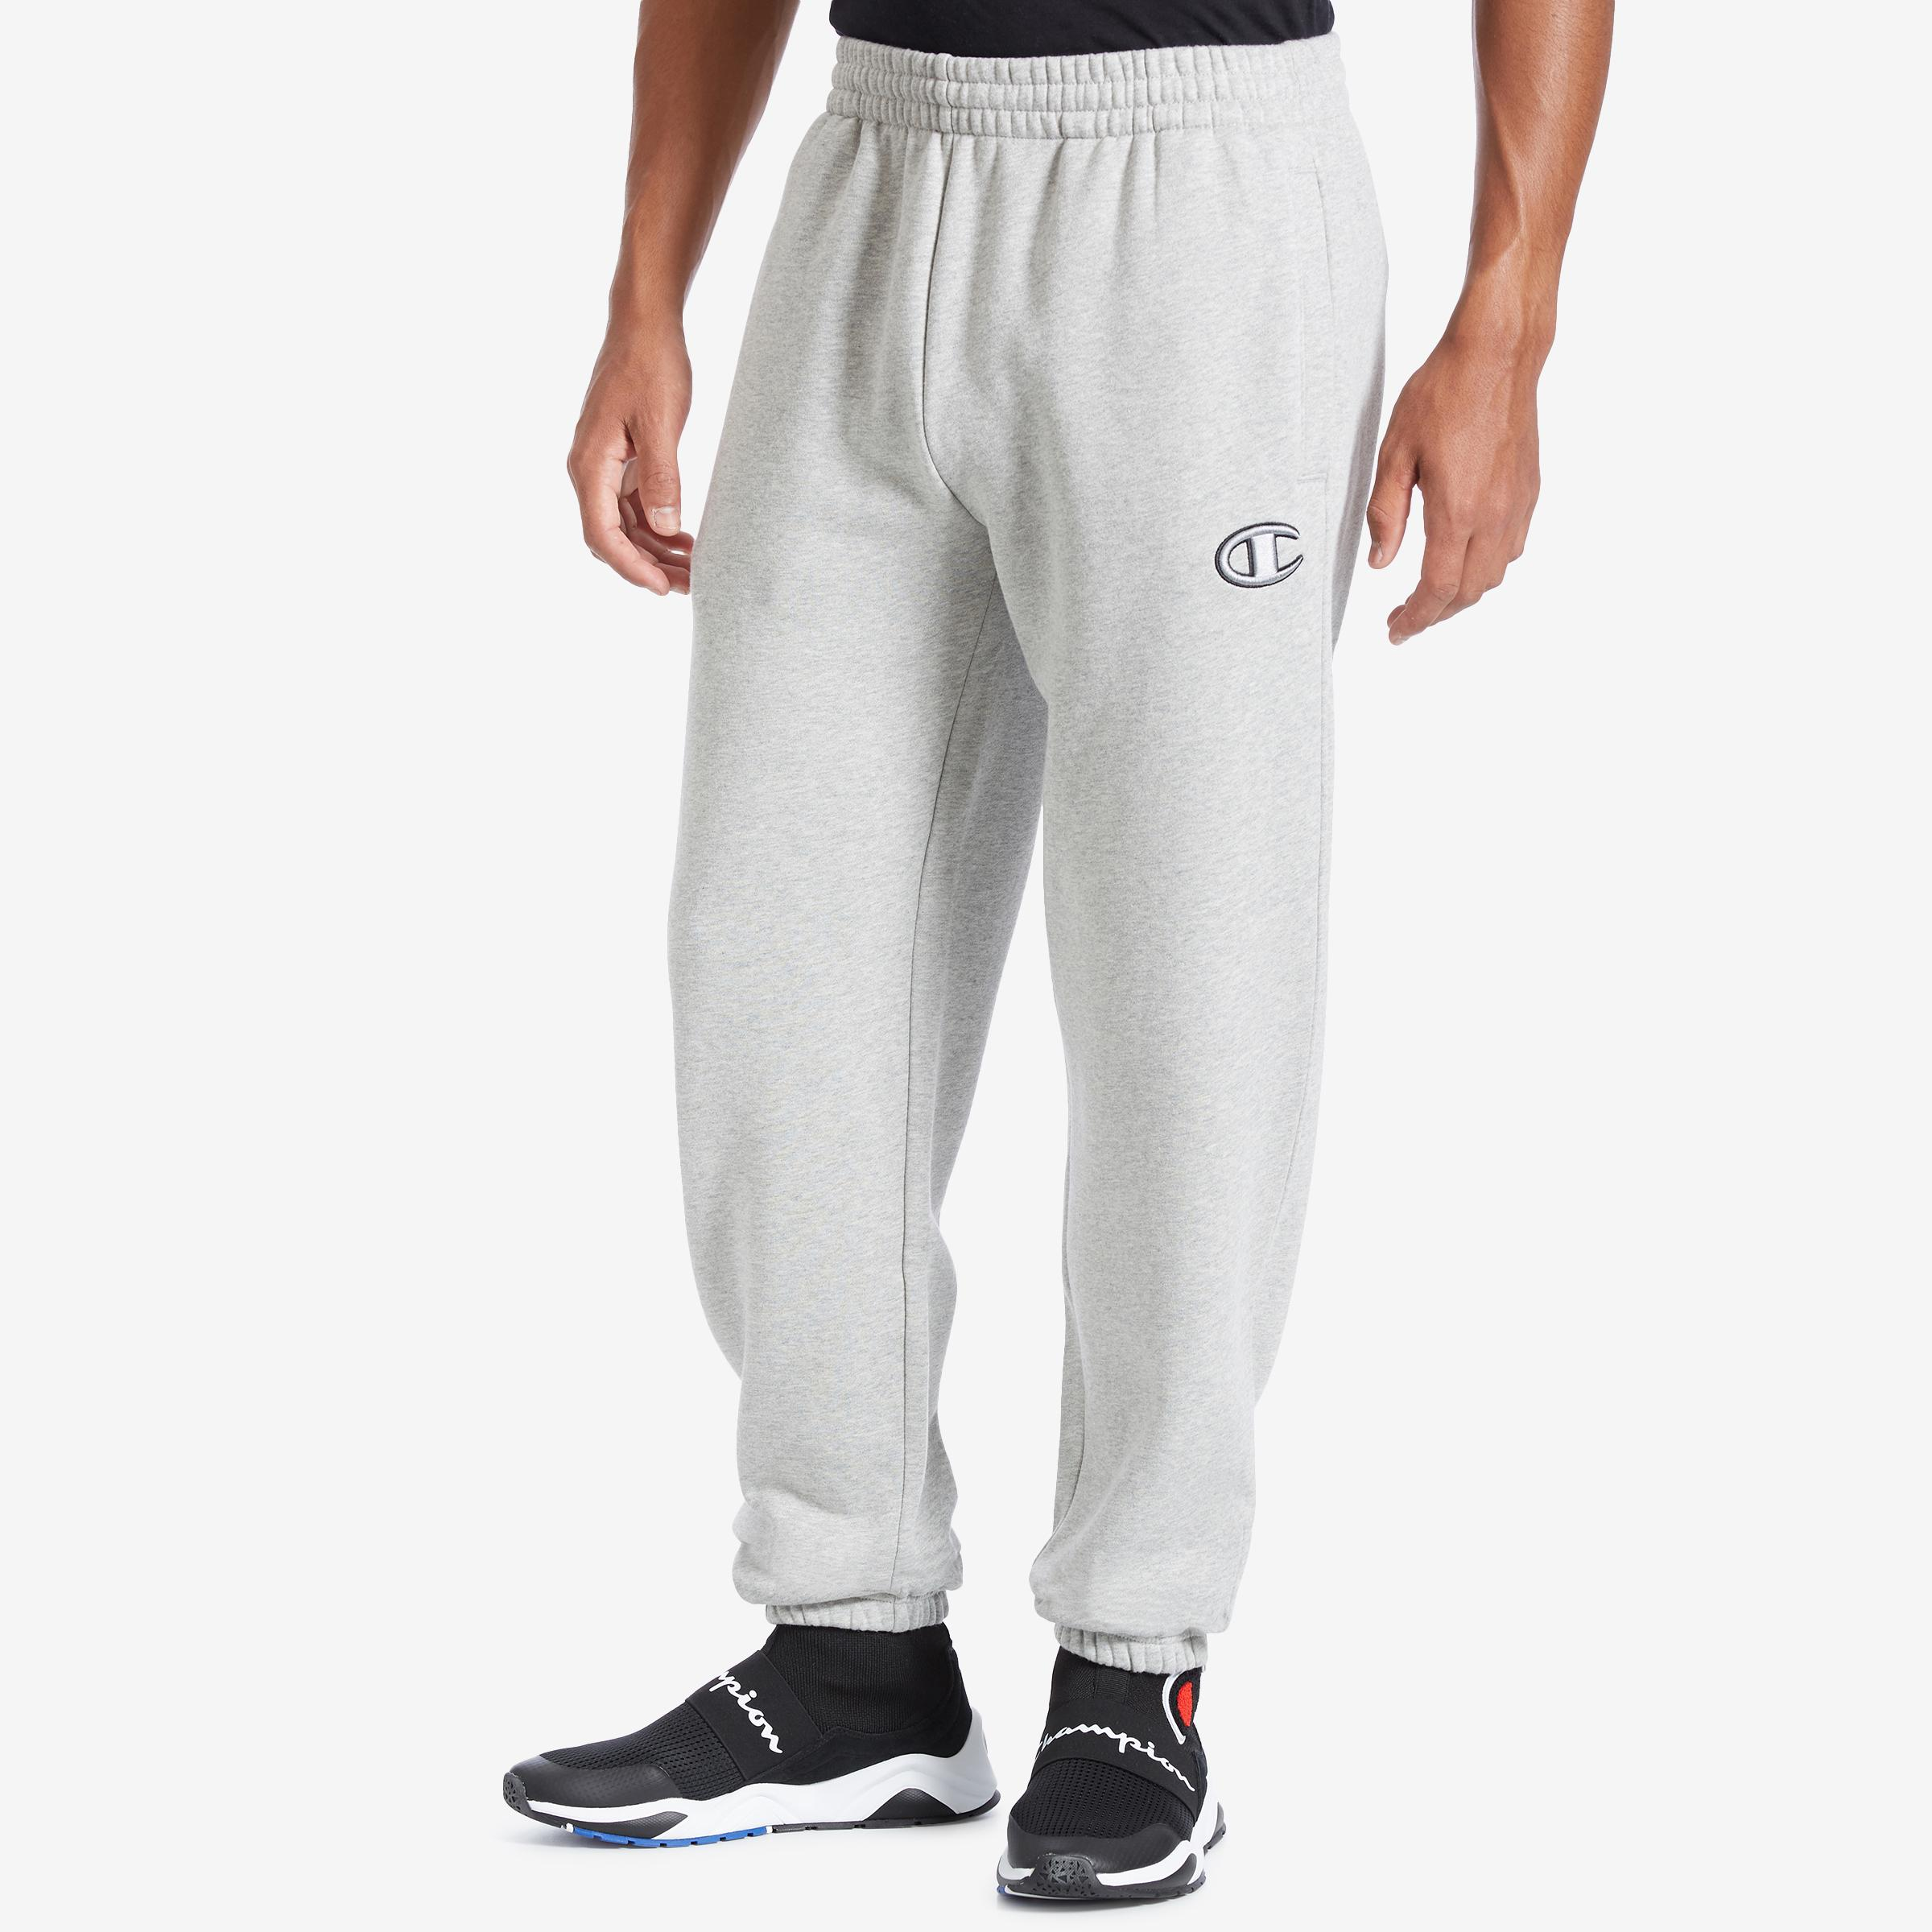 Life Super Fleece 2.0 Pants